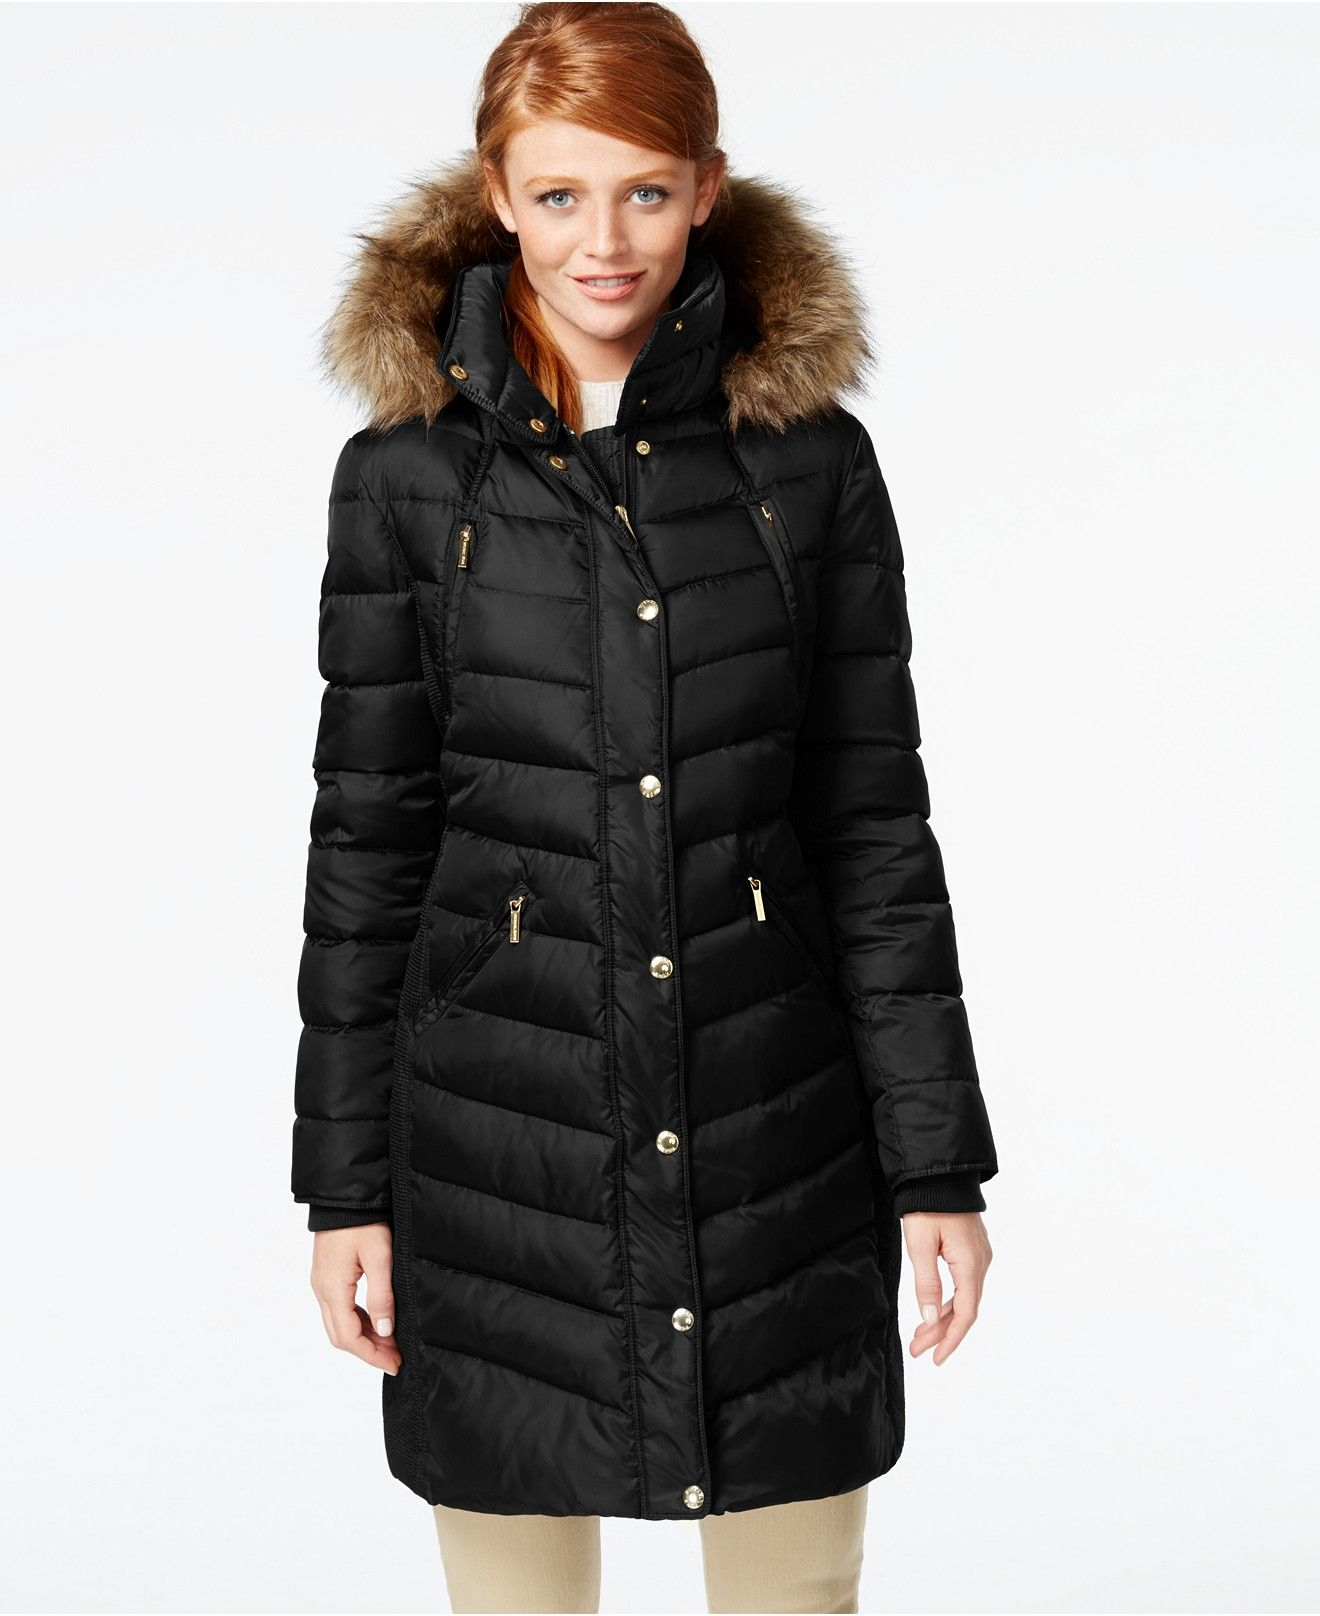 48f2d1660b2 MICHAEL Michael Kors Hooded Faux-Fur-Trim Down Puffer Coat - Coats - Women  - Macy s